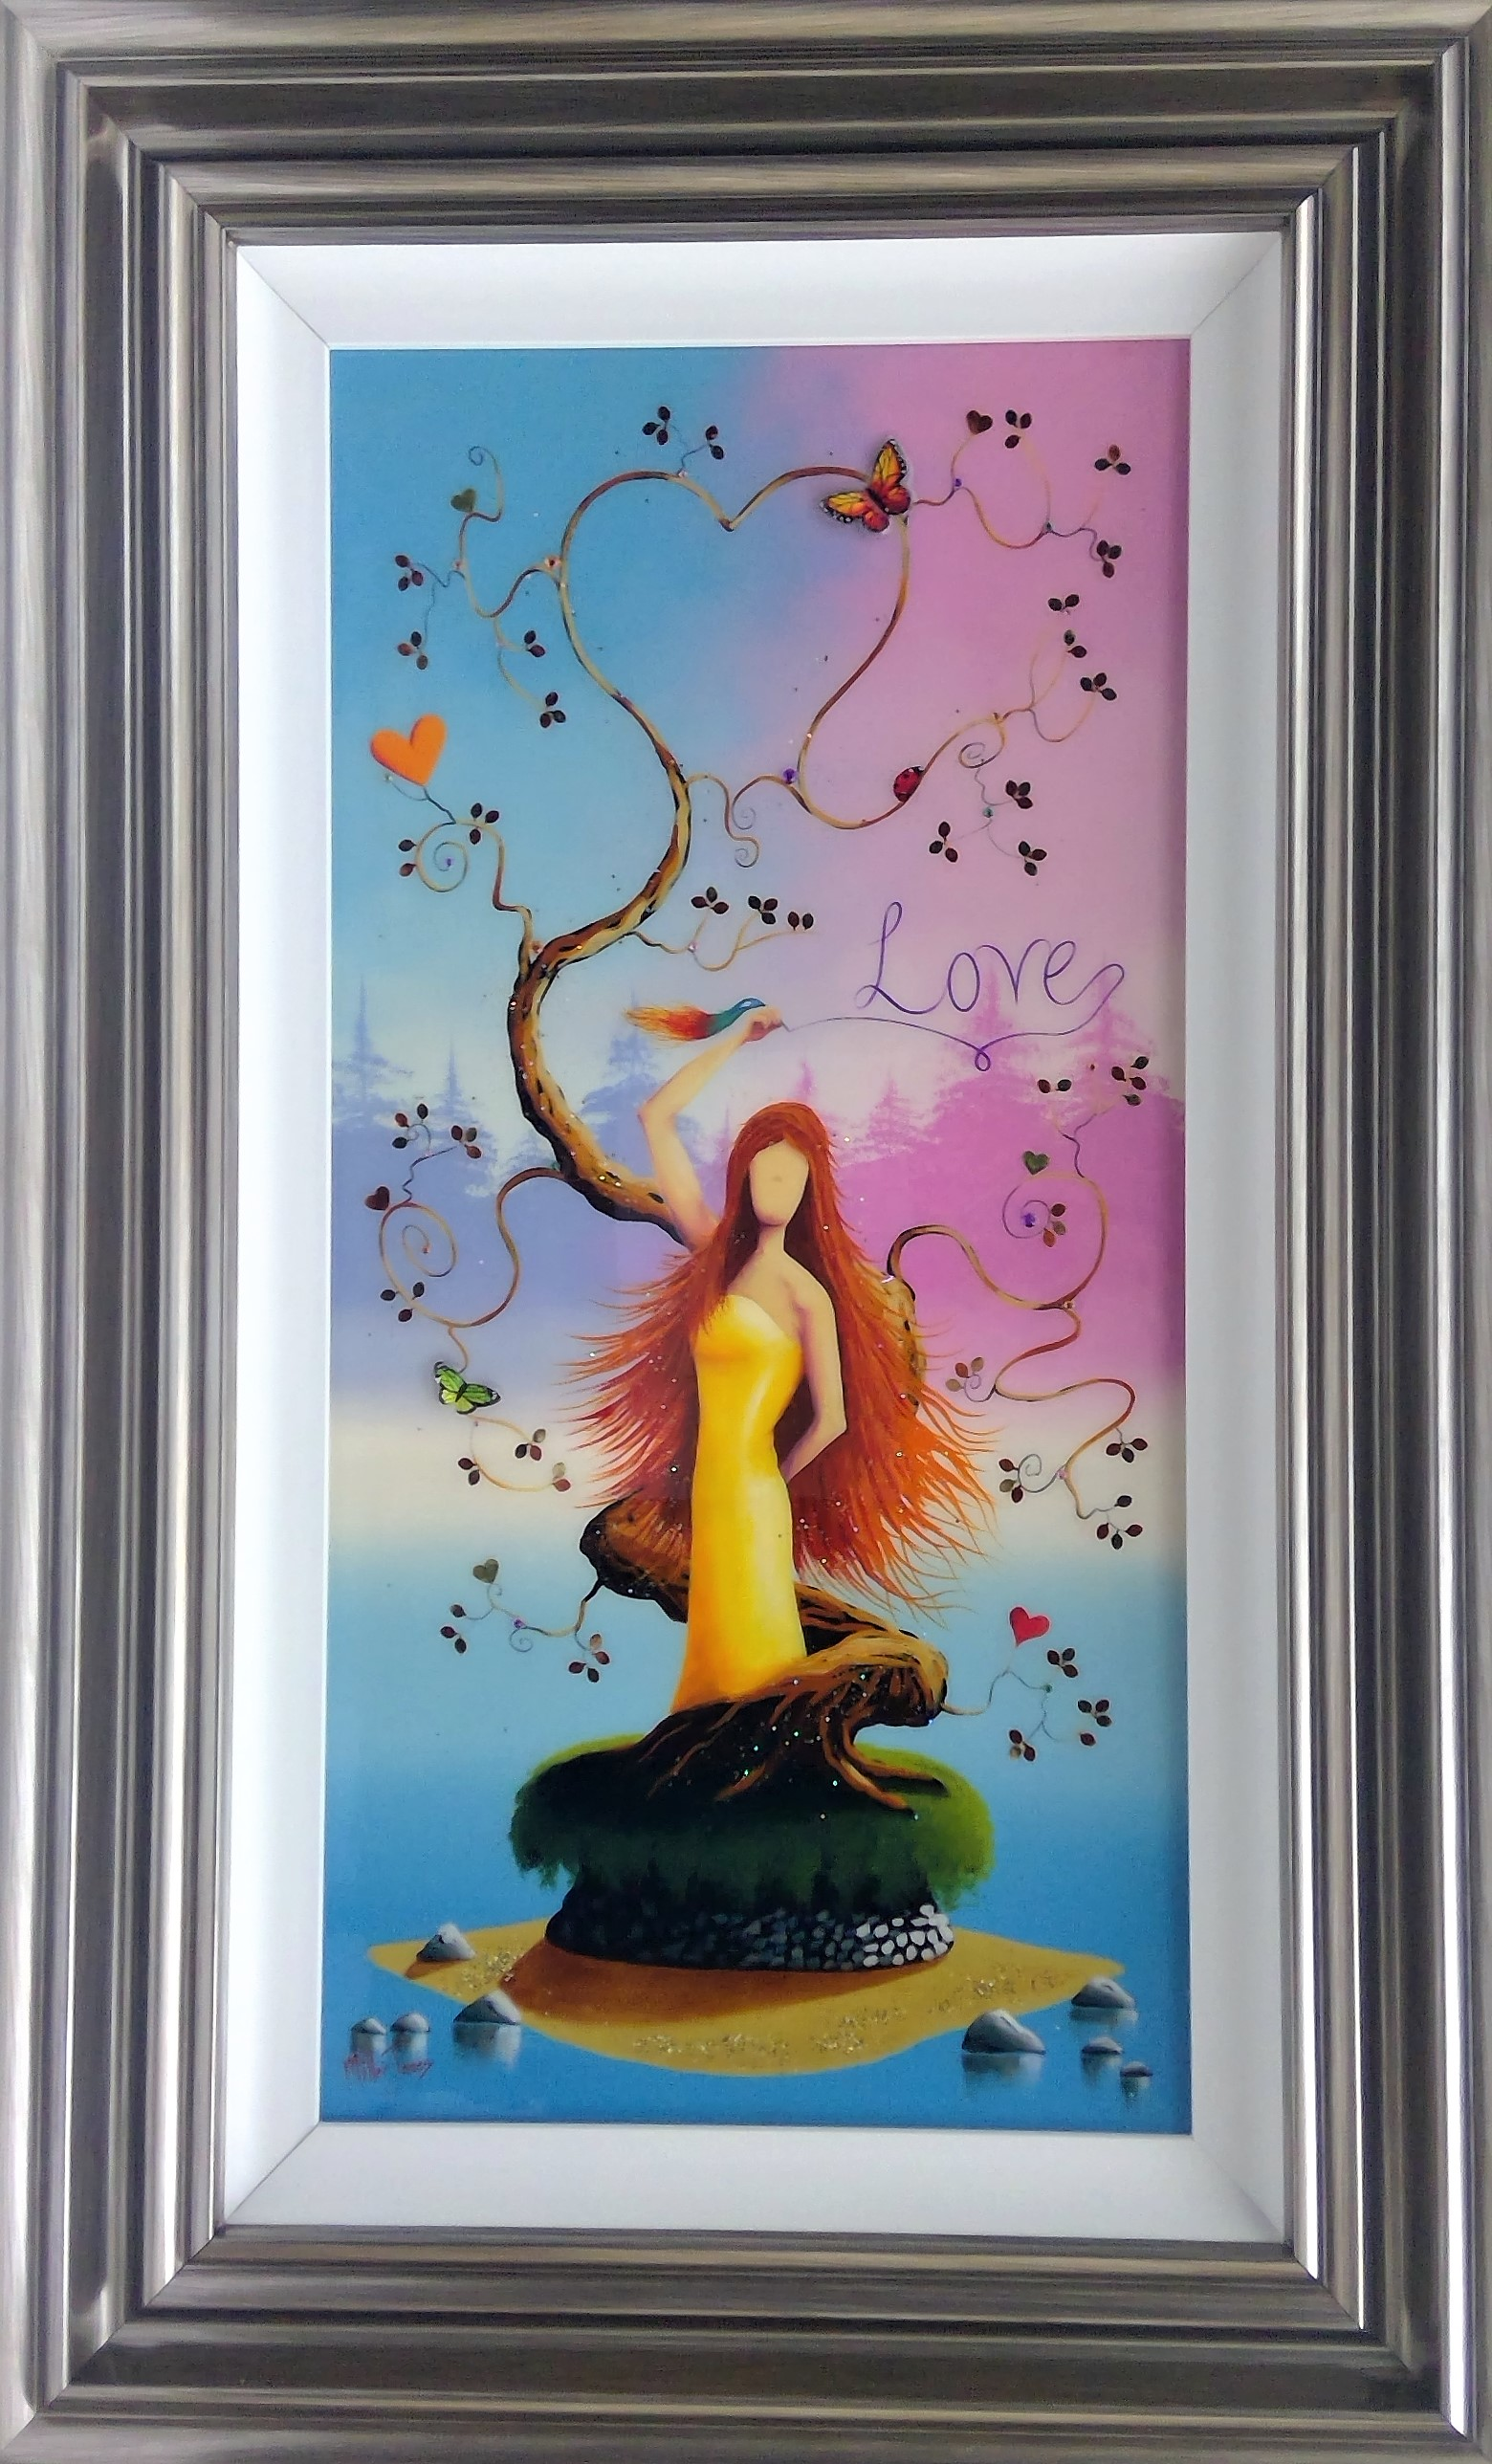 "'With Love' - Framed size 20""x32""Was £495NOW £250SOLD"